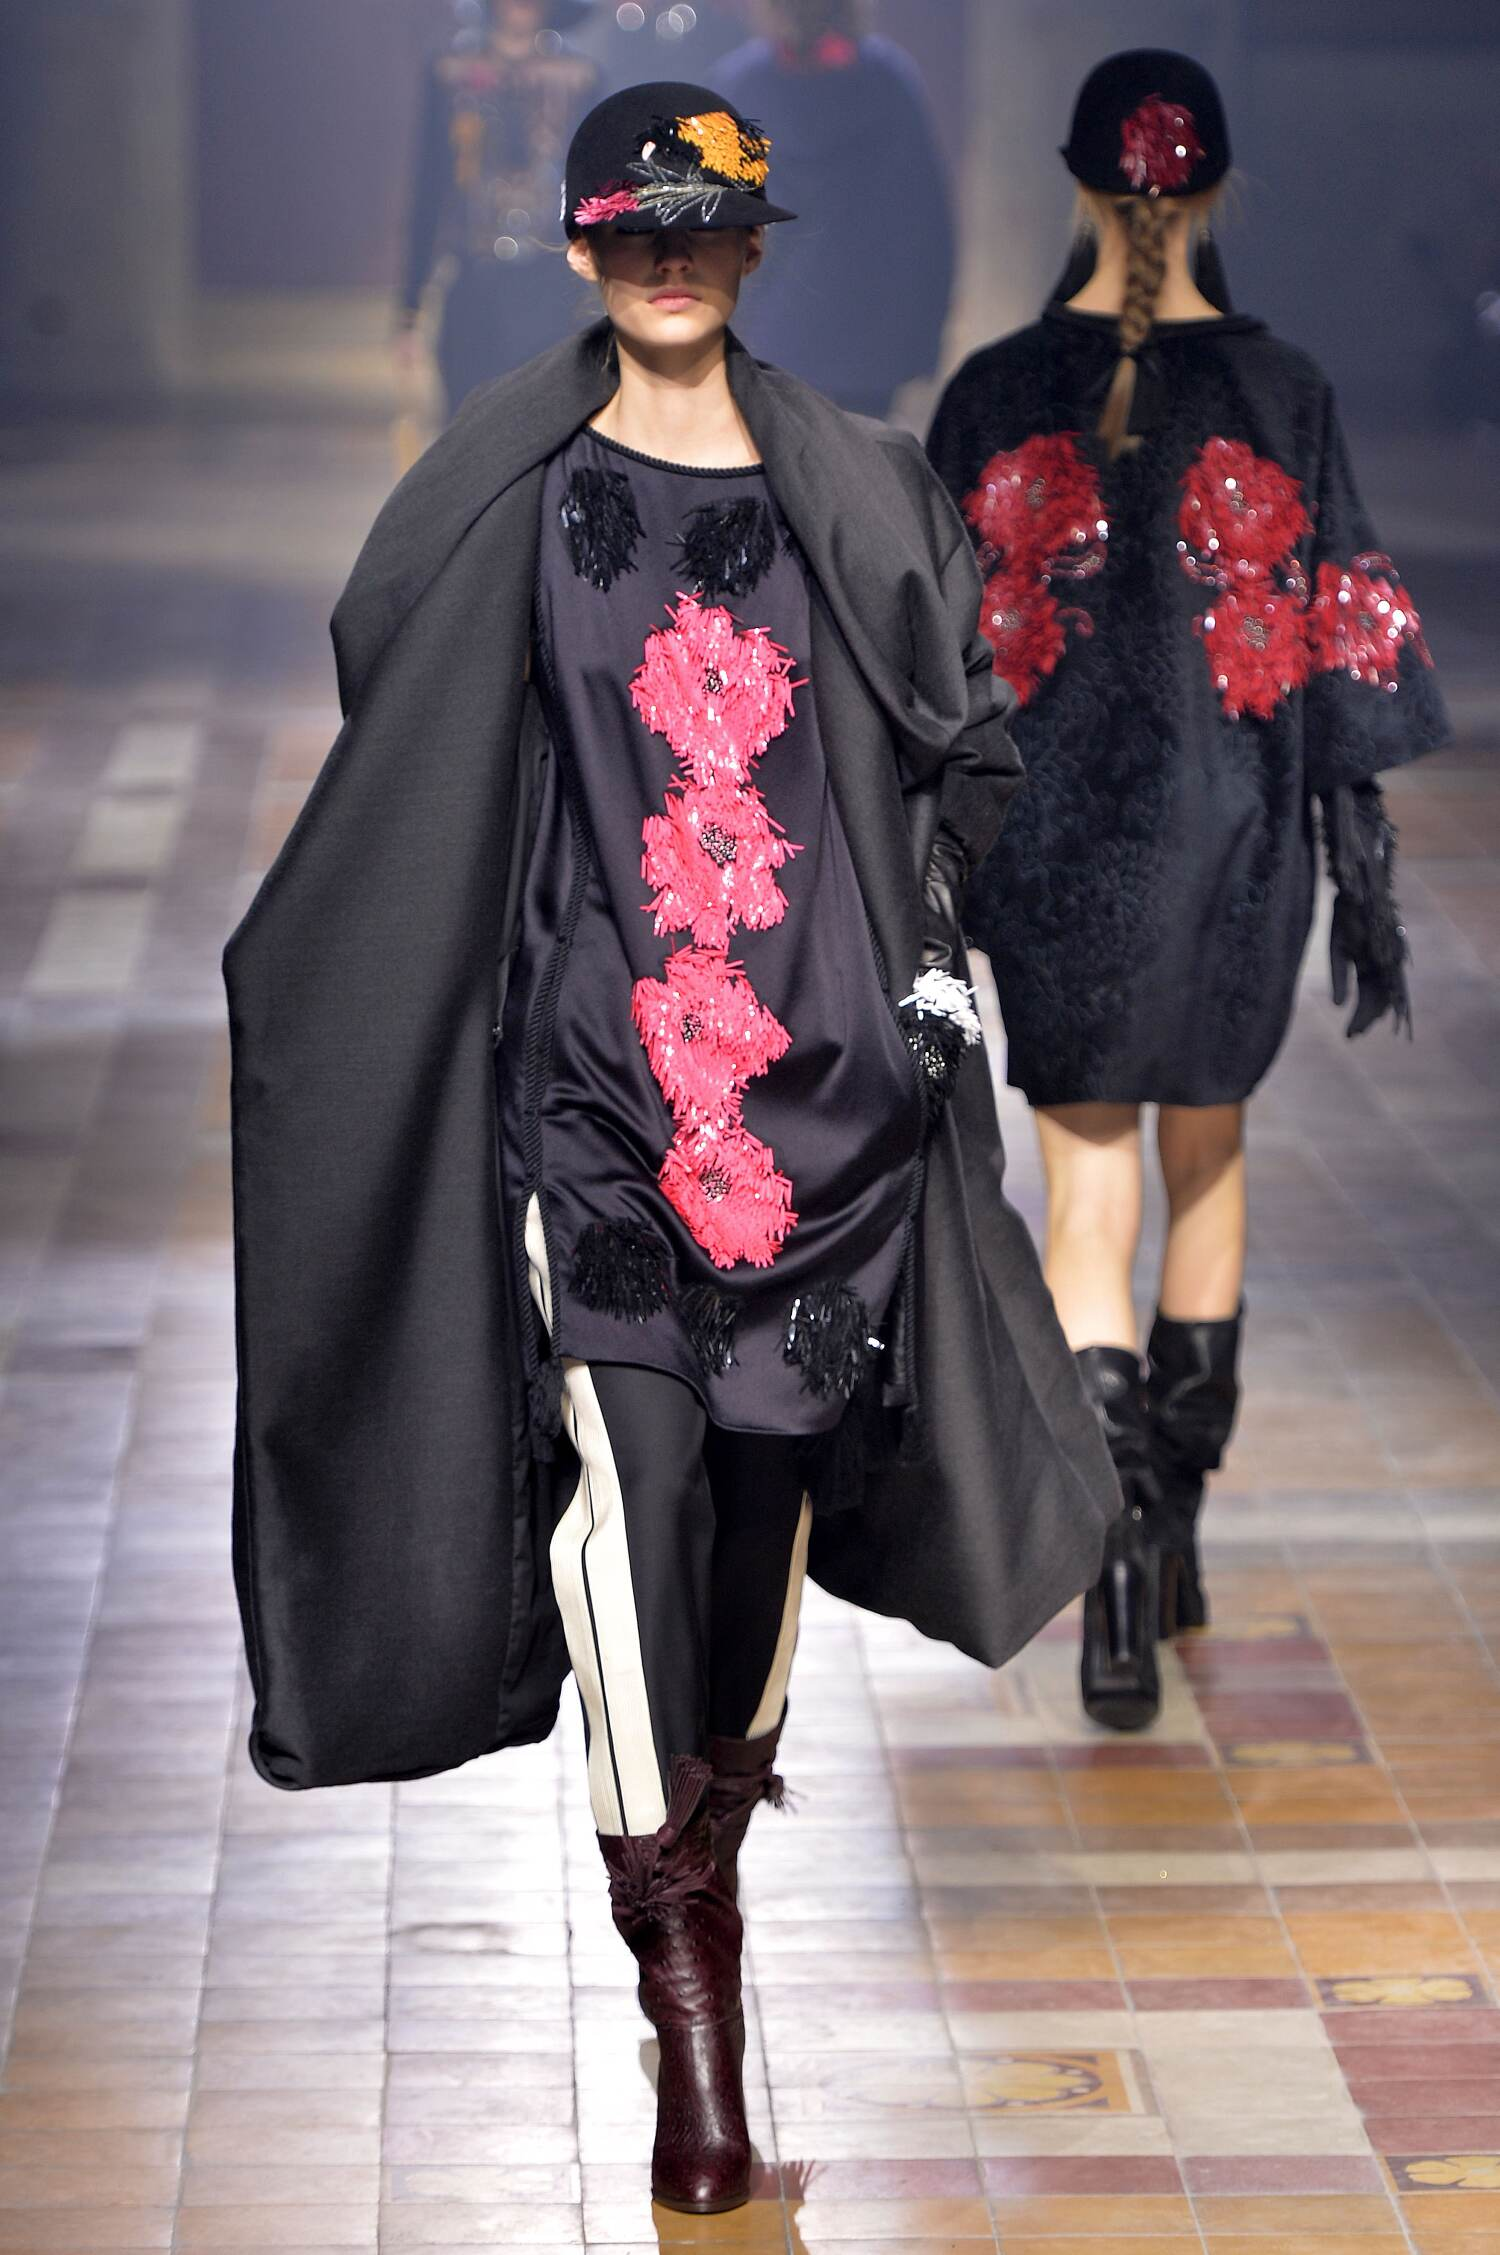 2015 16 Fall Winter Fashion Collection Lanvin